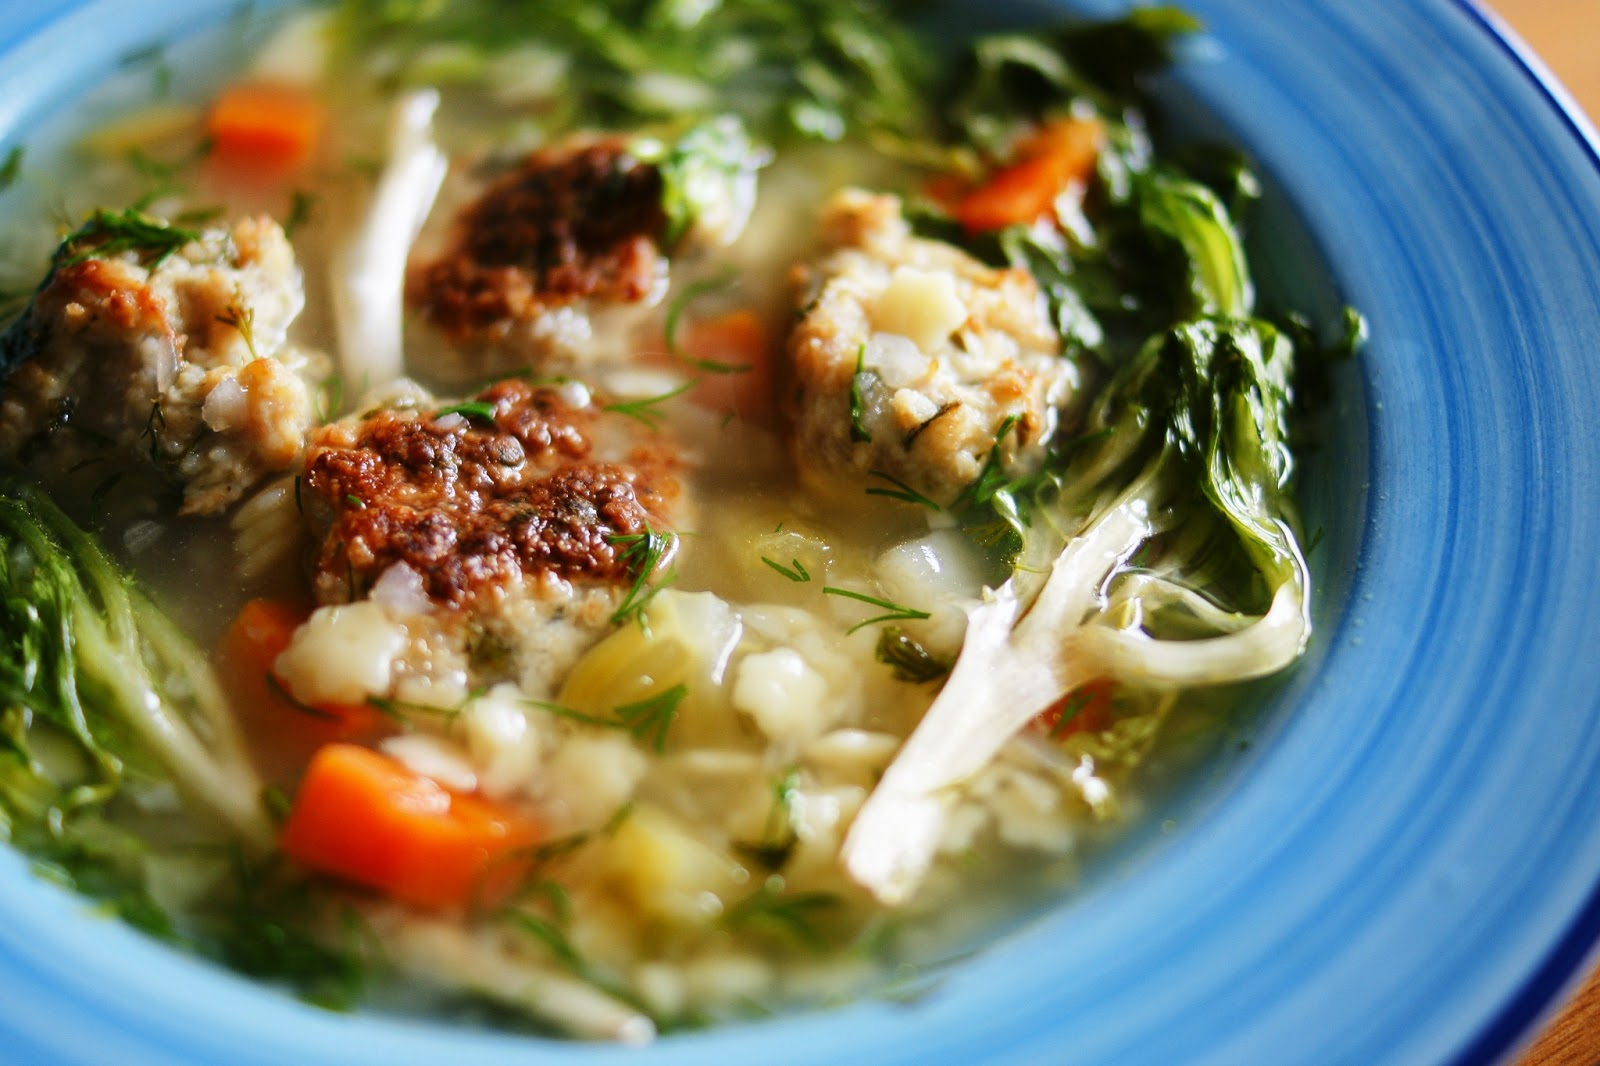 Mia Loves Pretty: Italian Wedding Soup - Oh My!